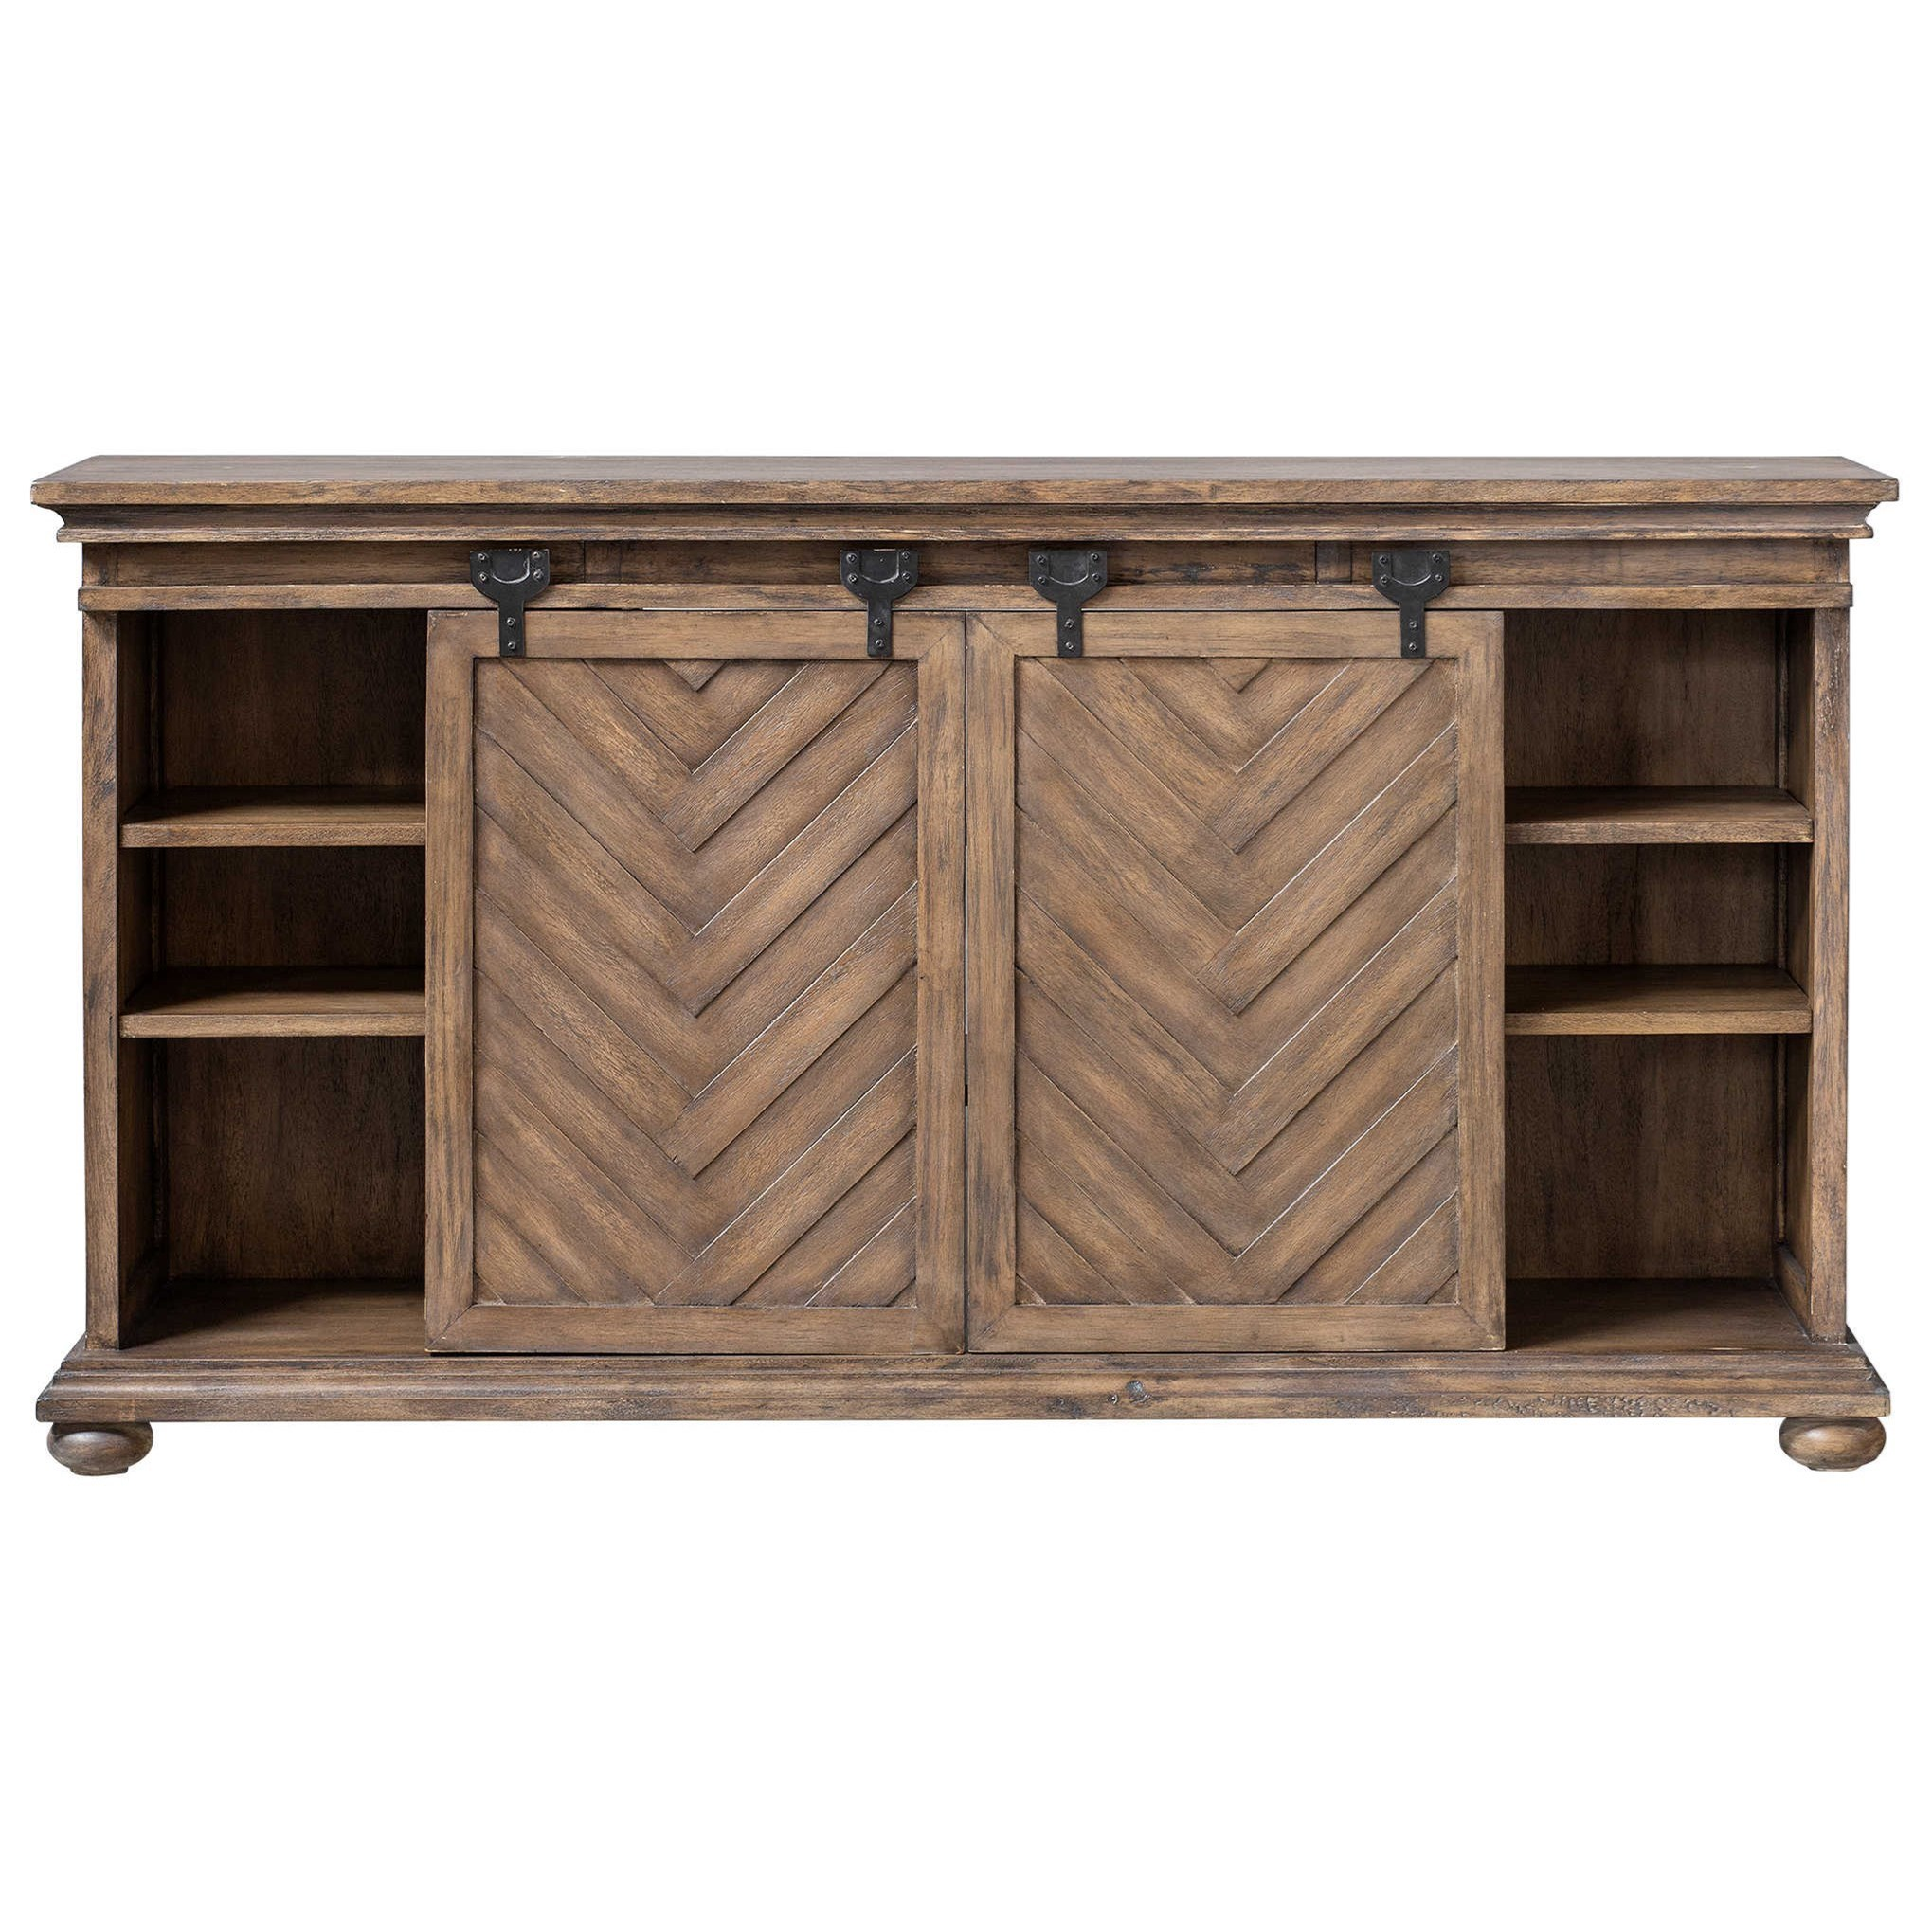 Accent Furniture Primalia Barn Door Media Console by Uttermost at Upper Room Home Furnishings